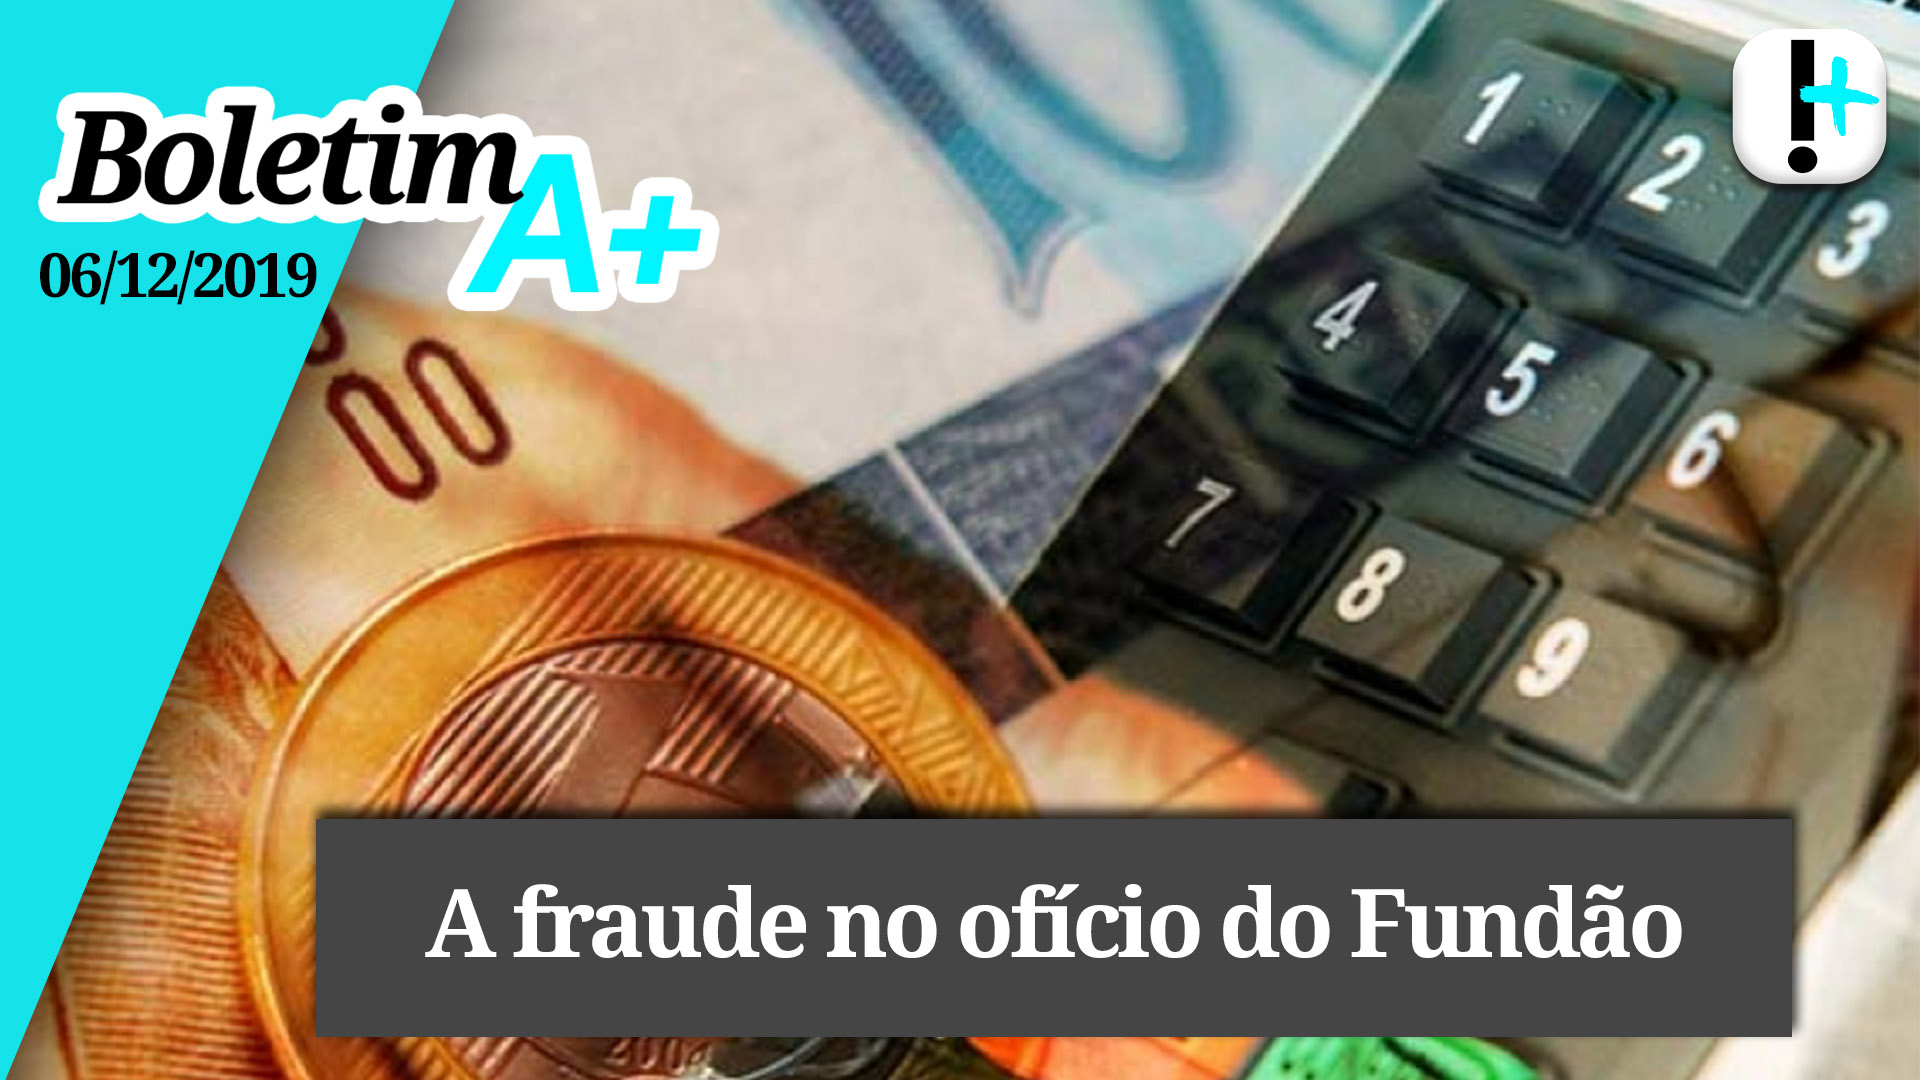 Boletim A+: a fraude no ofício do Fundão